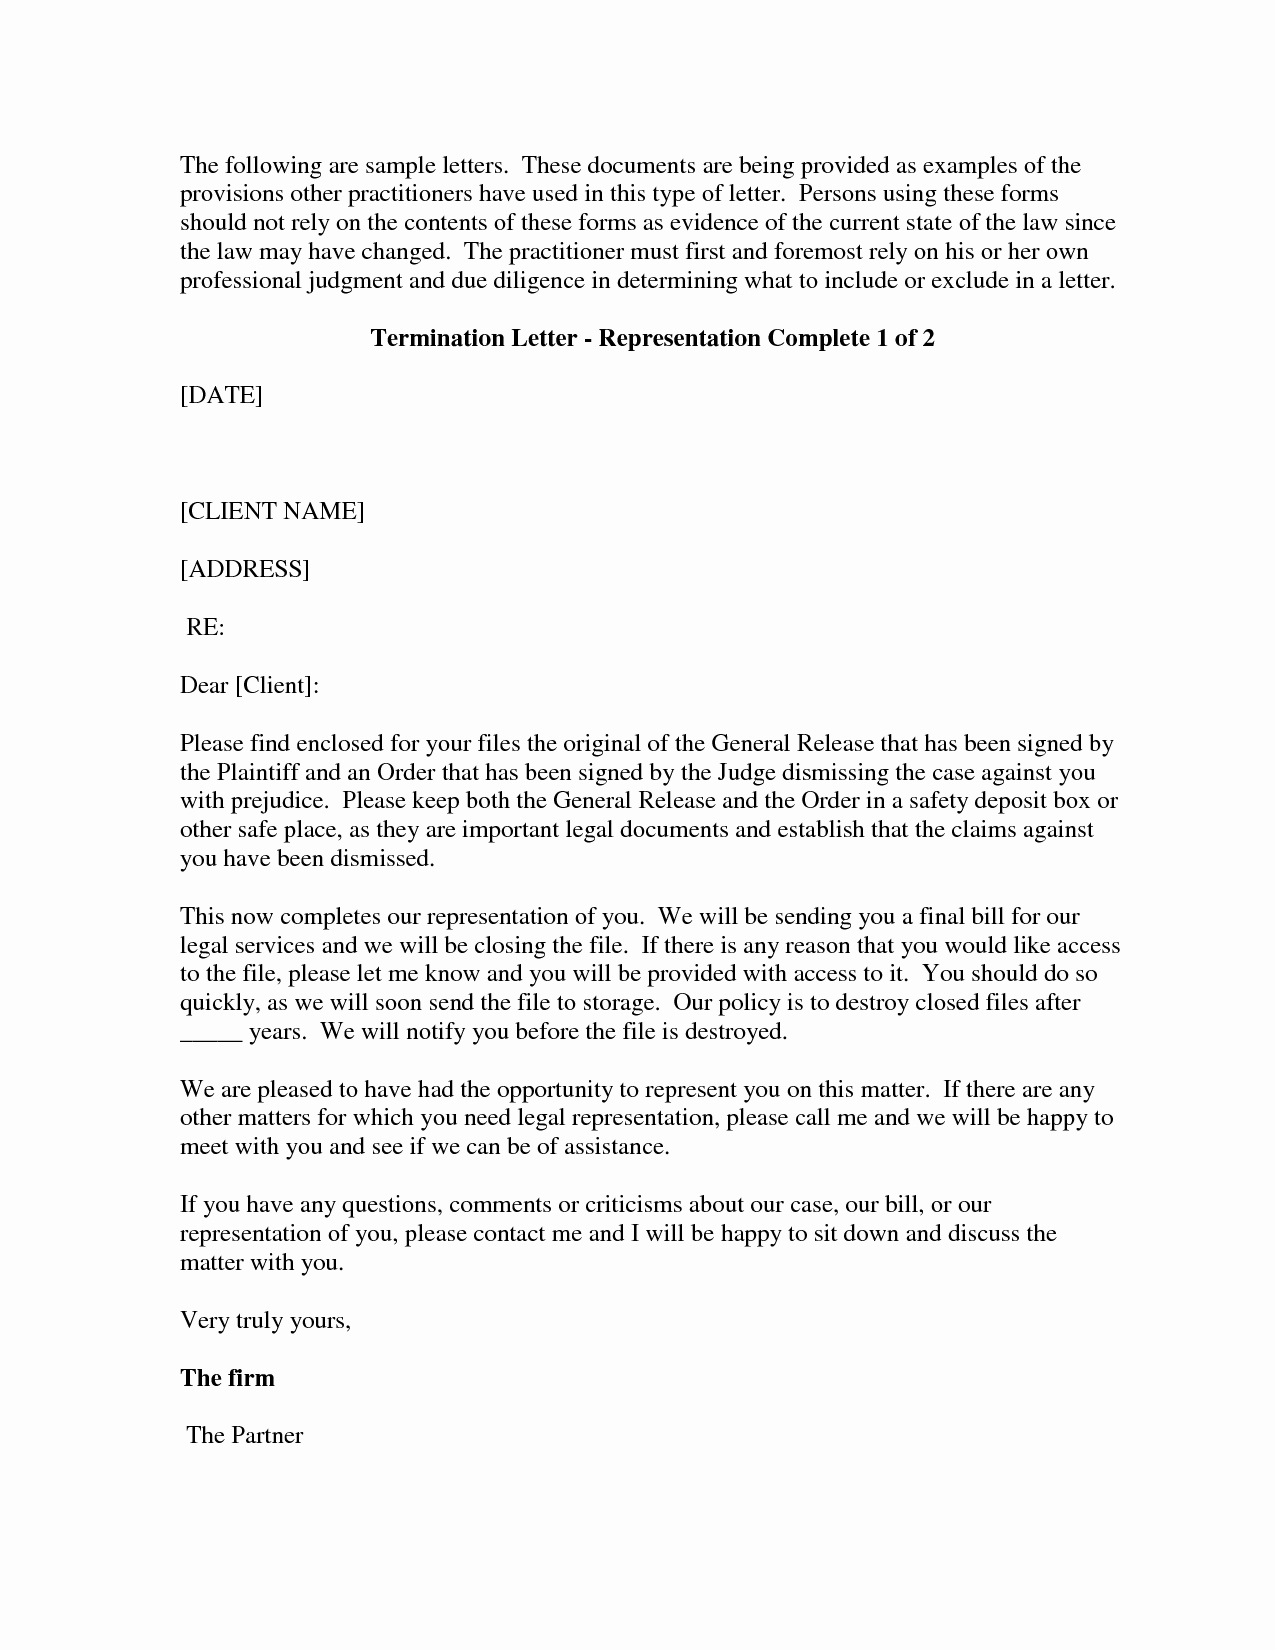 Client Termination Letter Template New Best S Of Firing A Client Letter Template Sample Letter Firing attorney Client How to